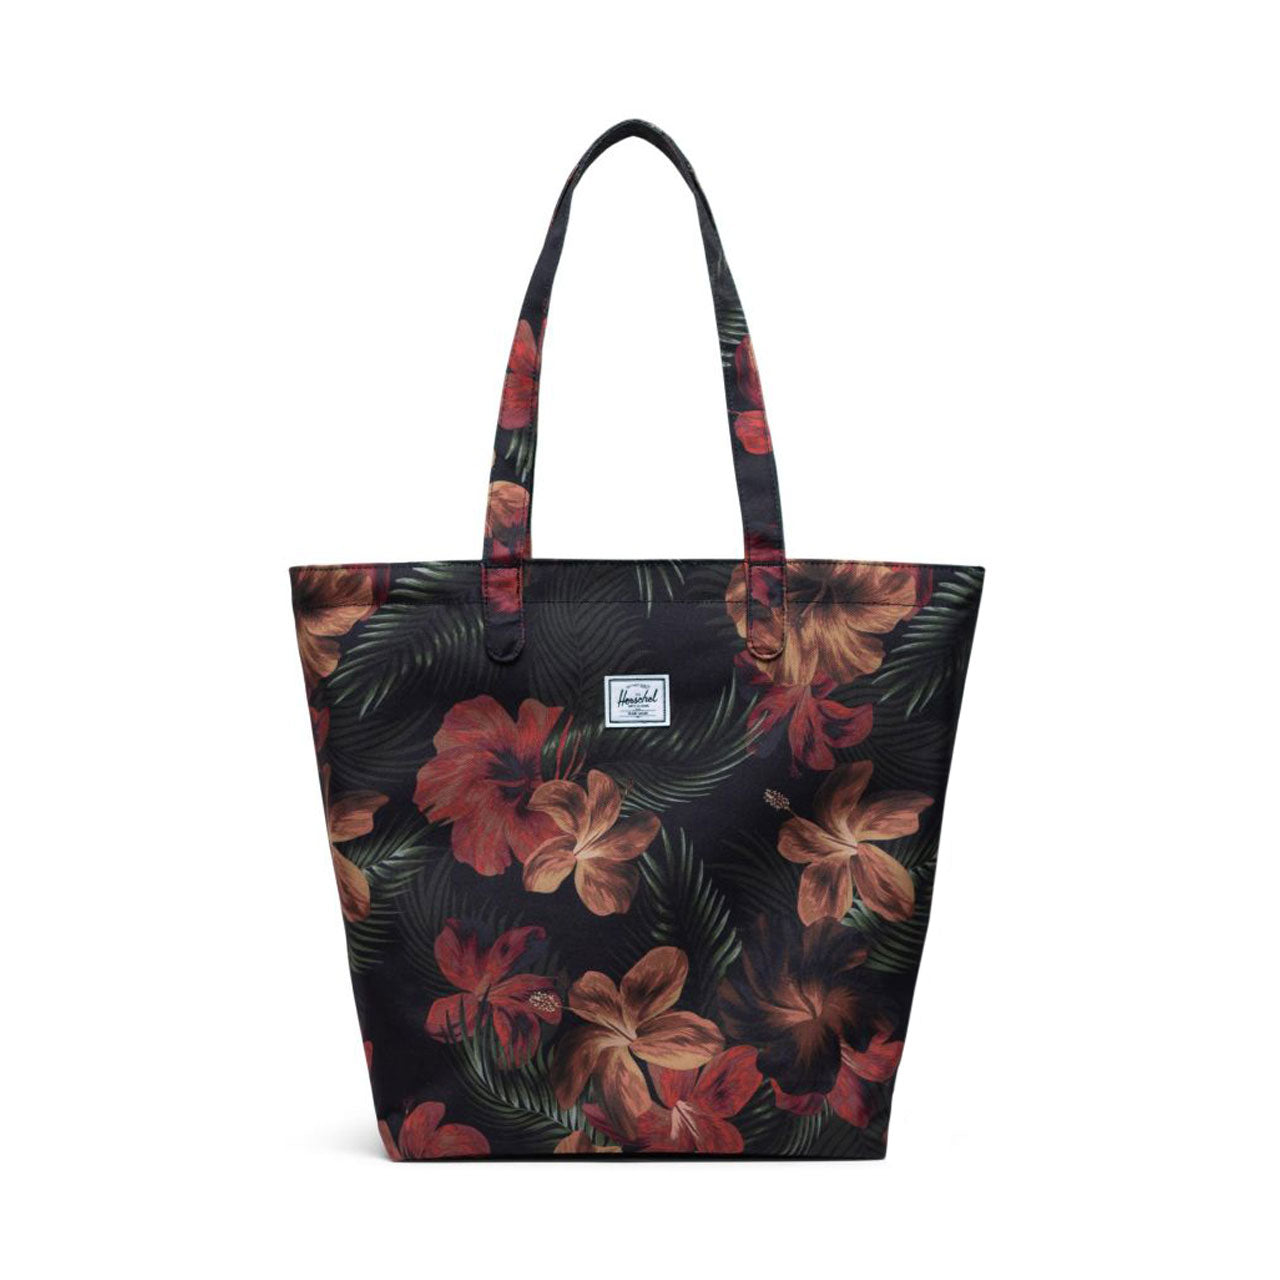 Herschel Supply Co. Mica Tote